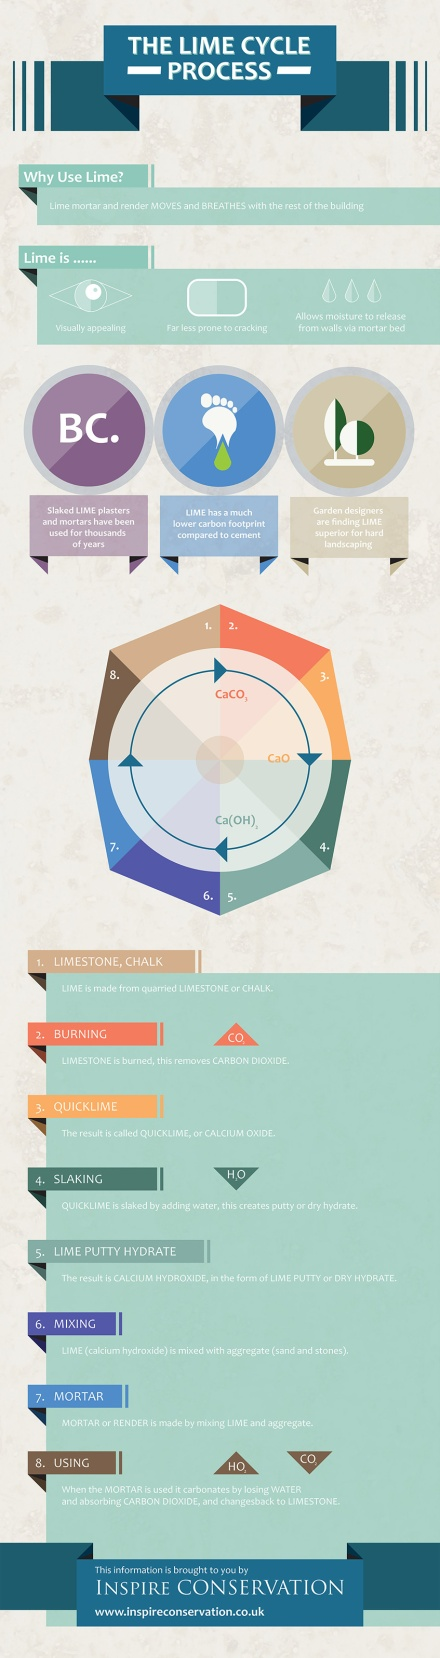 Inspire-Conservation-Limecycle-infographic-by Marcus Marritt